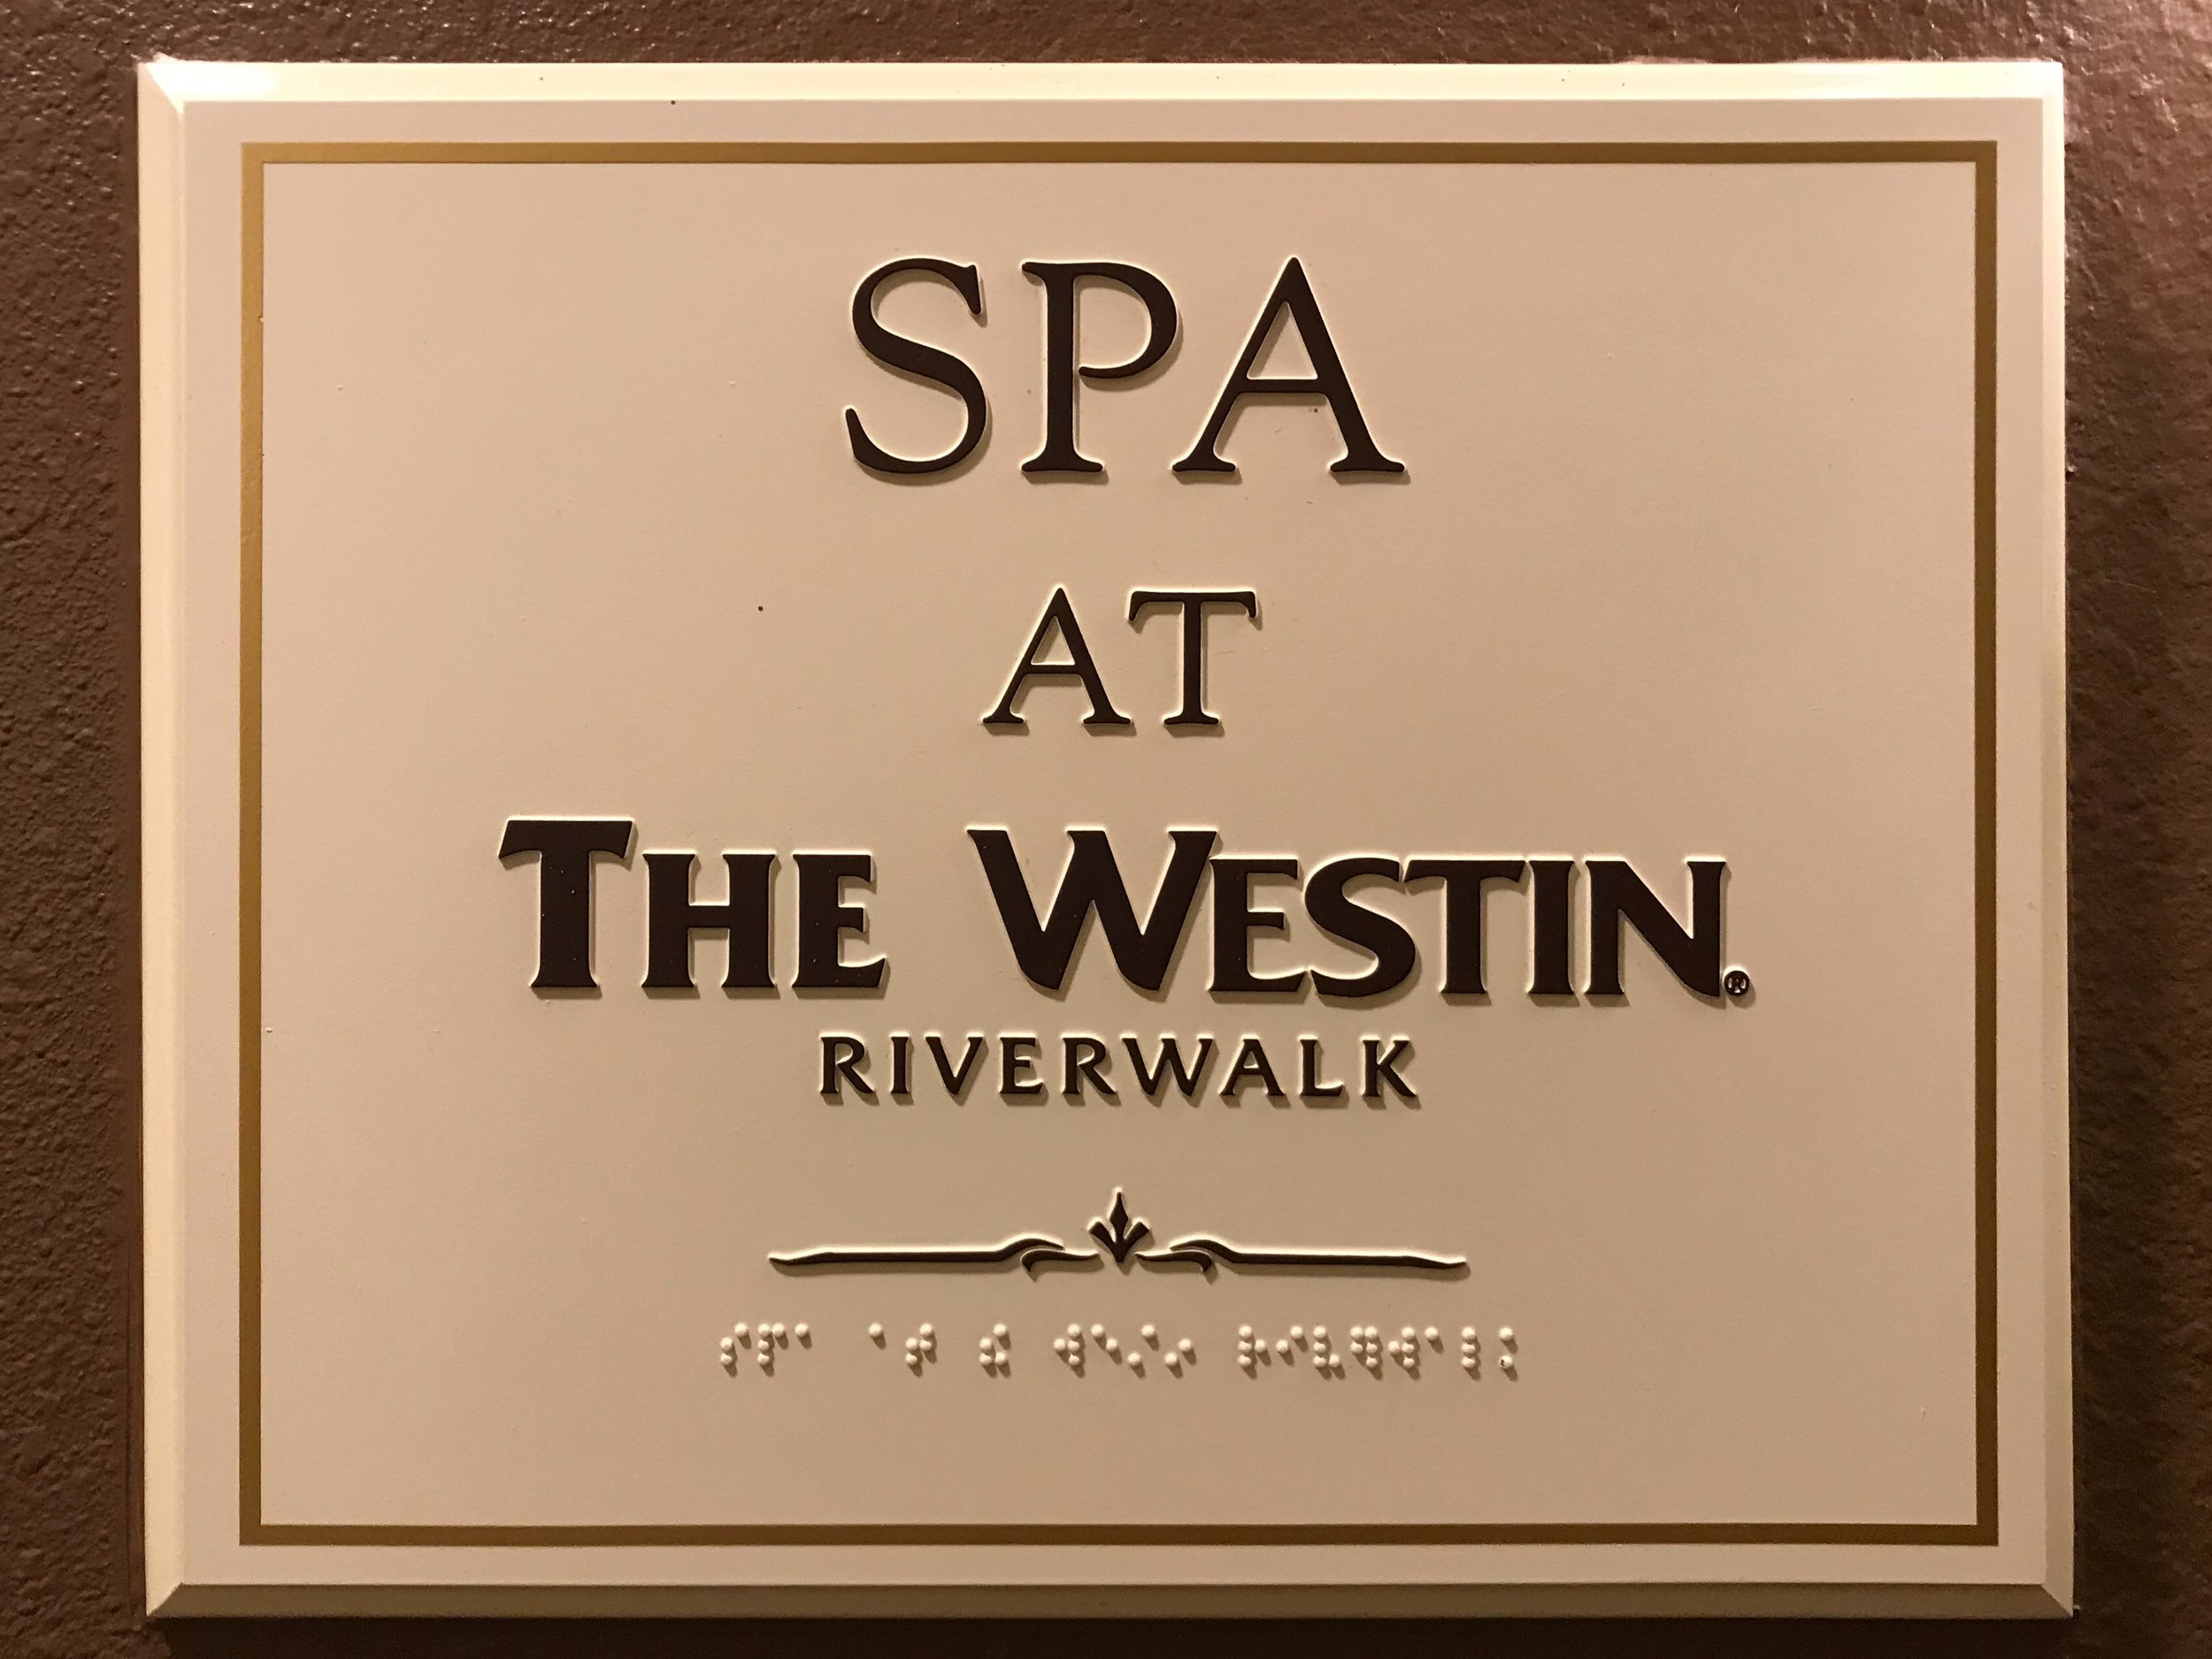 The Spa was on the 4th floor, just next to the pool and workout room, but it was closed for maintenance.